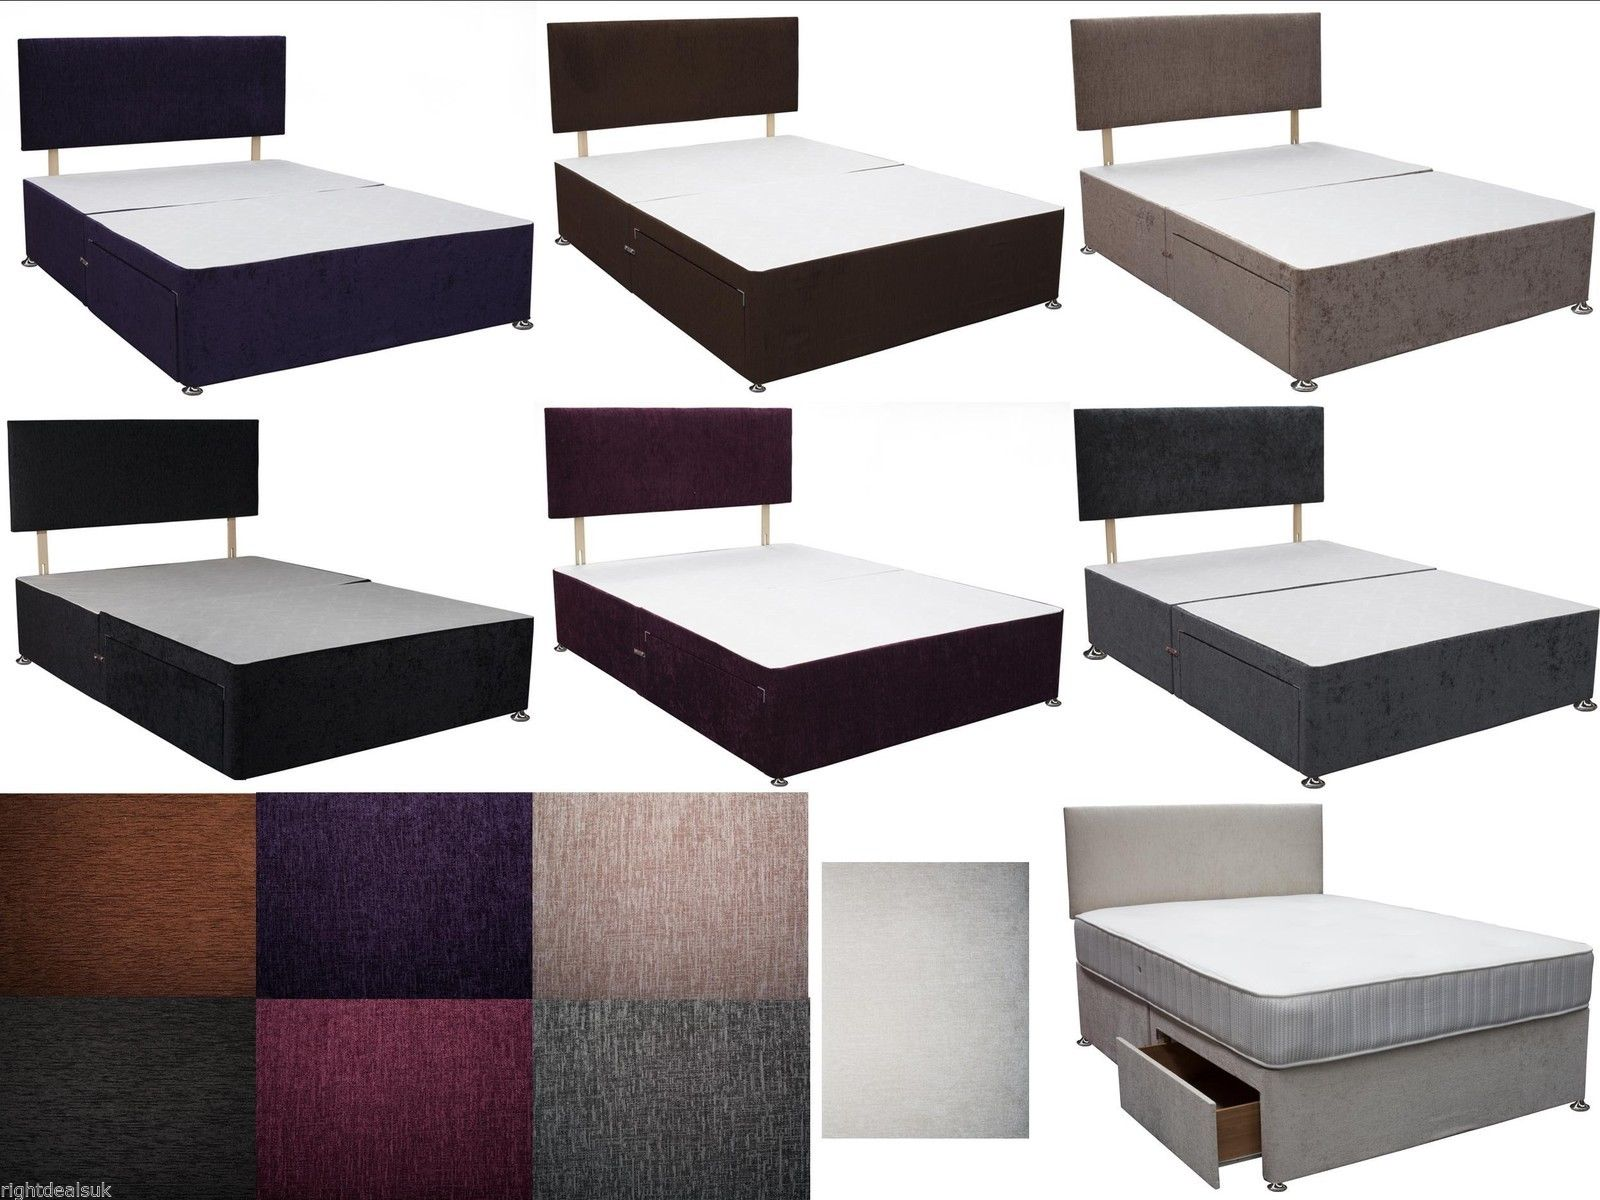 Caspian 4ft small double divan bed with drawers for 4 foot divan beds with drawers